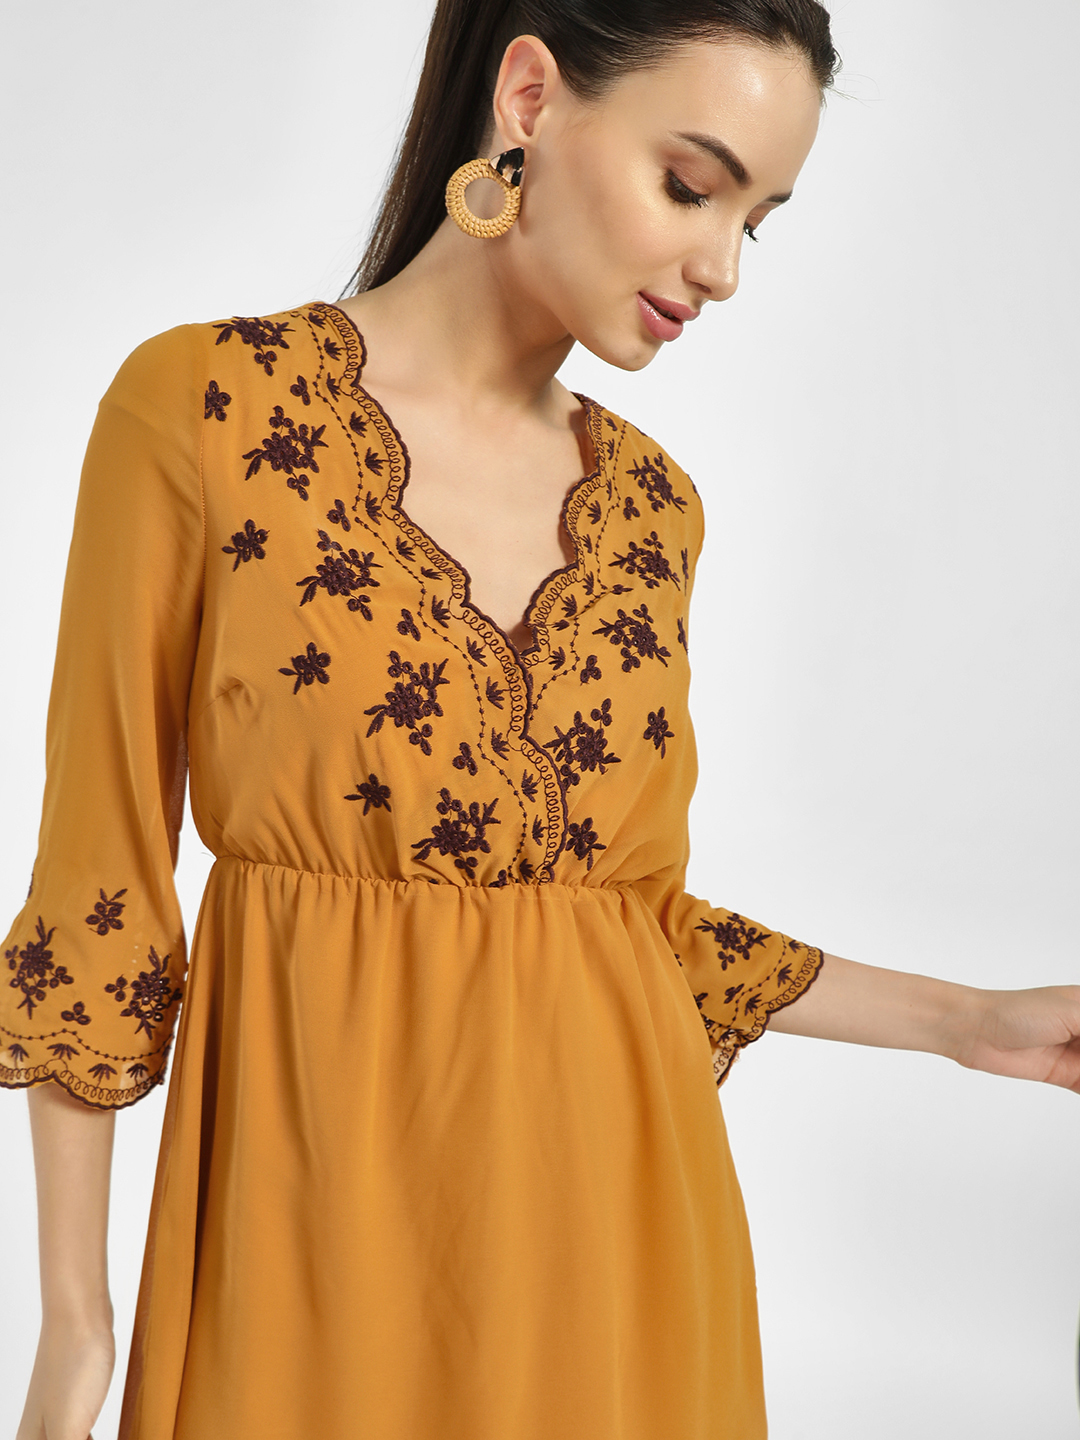 Iris Multi Scalloped Embroidered Hem Shift Dress 1